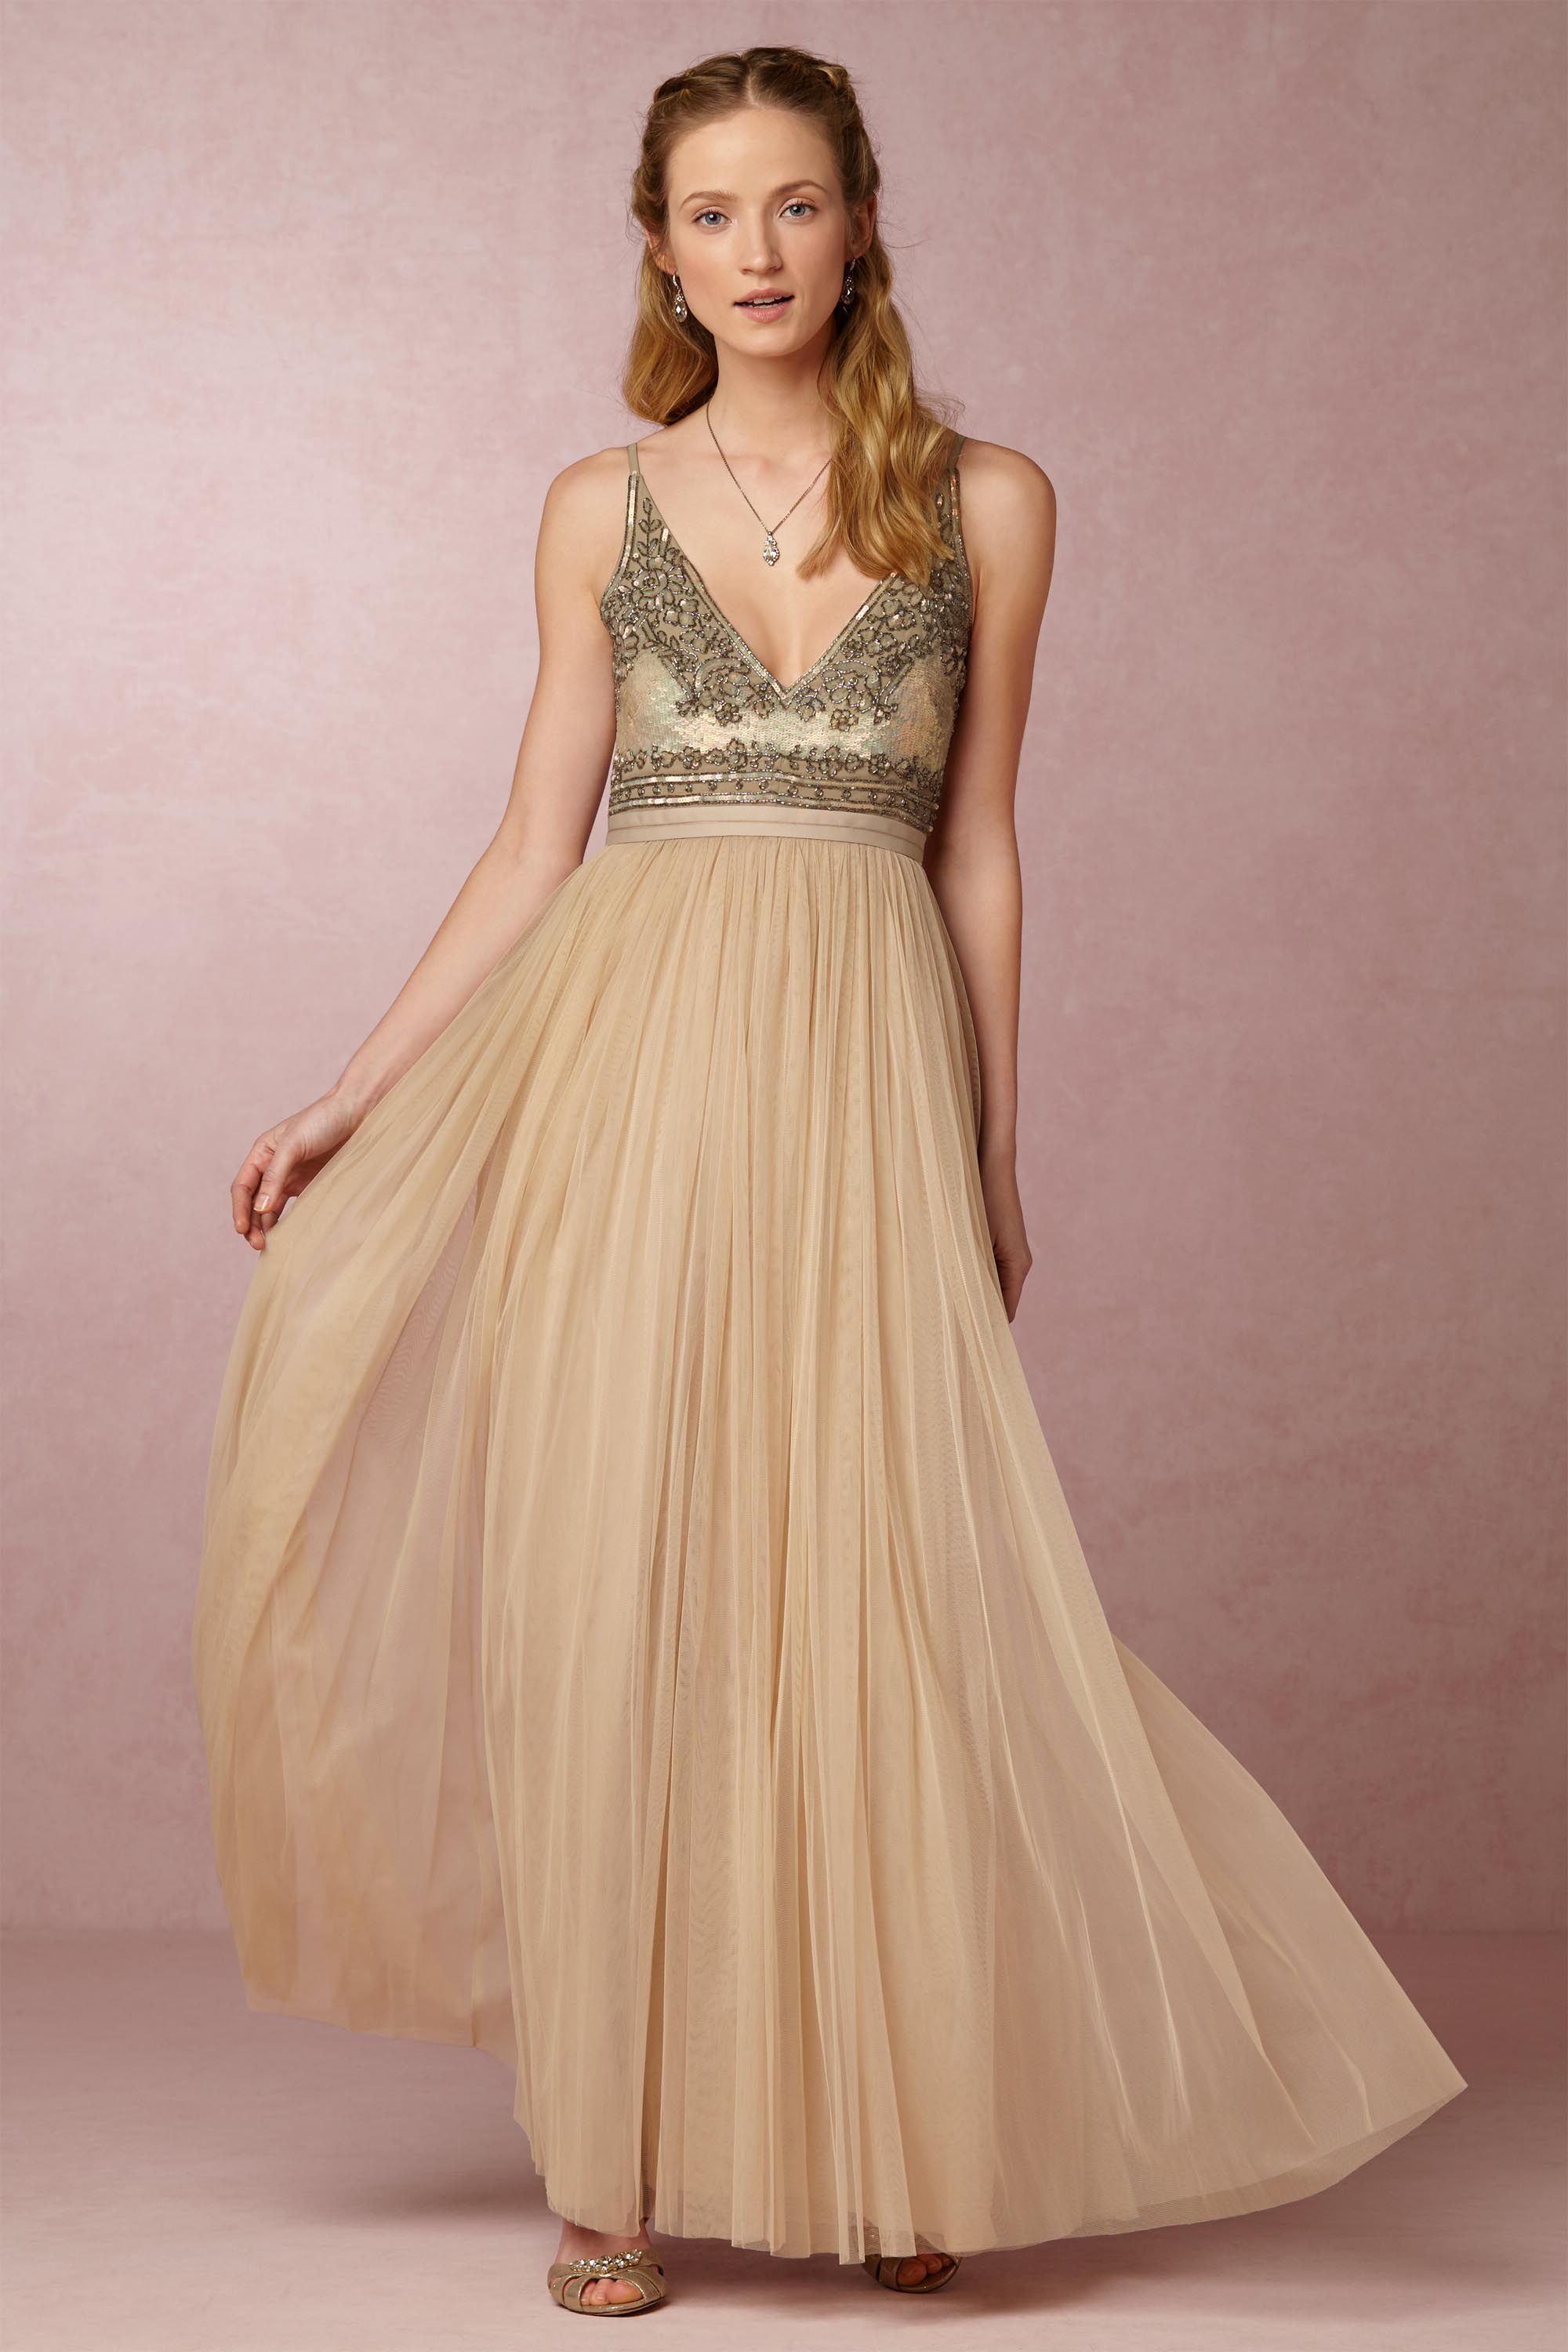 28842655445f Brisa Dress from @BHLDN #autumn #wedding #details $370 | Autumn ...